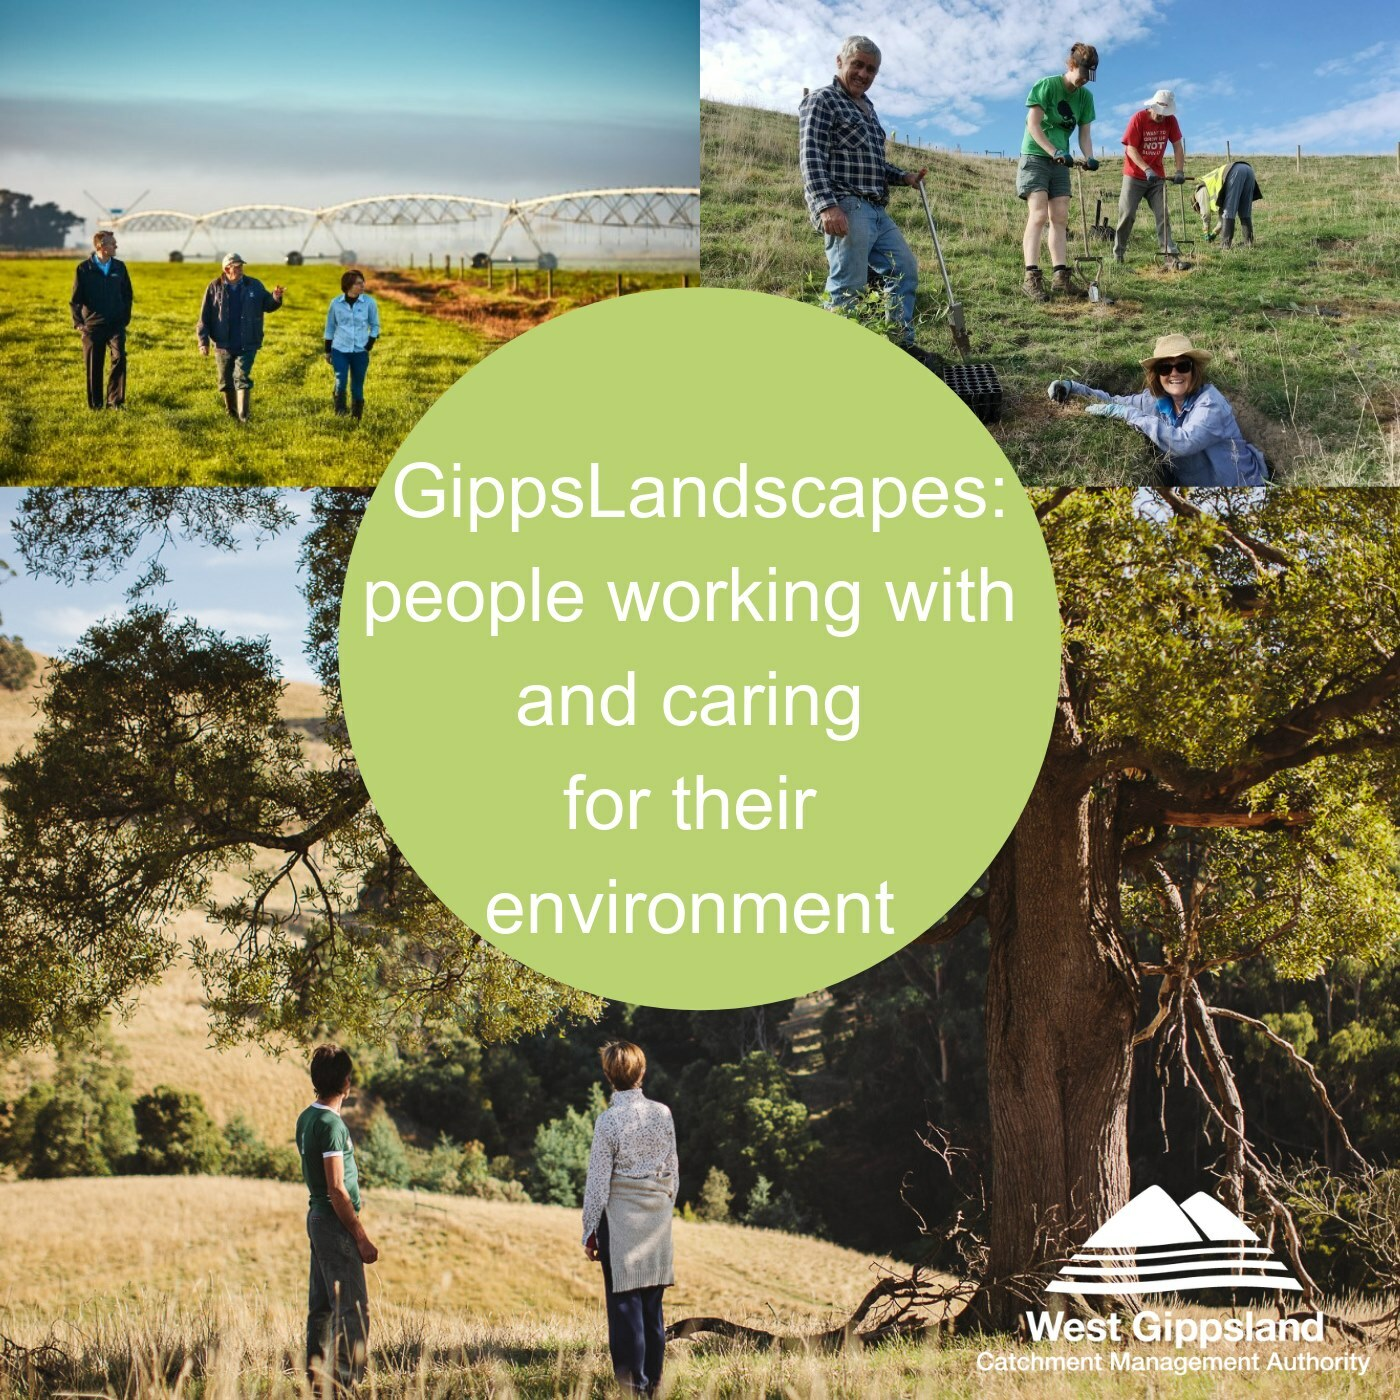 GippslandScapes Podcast